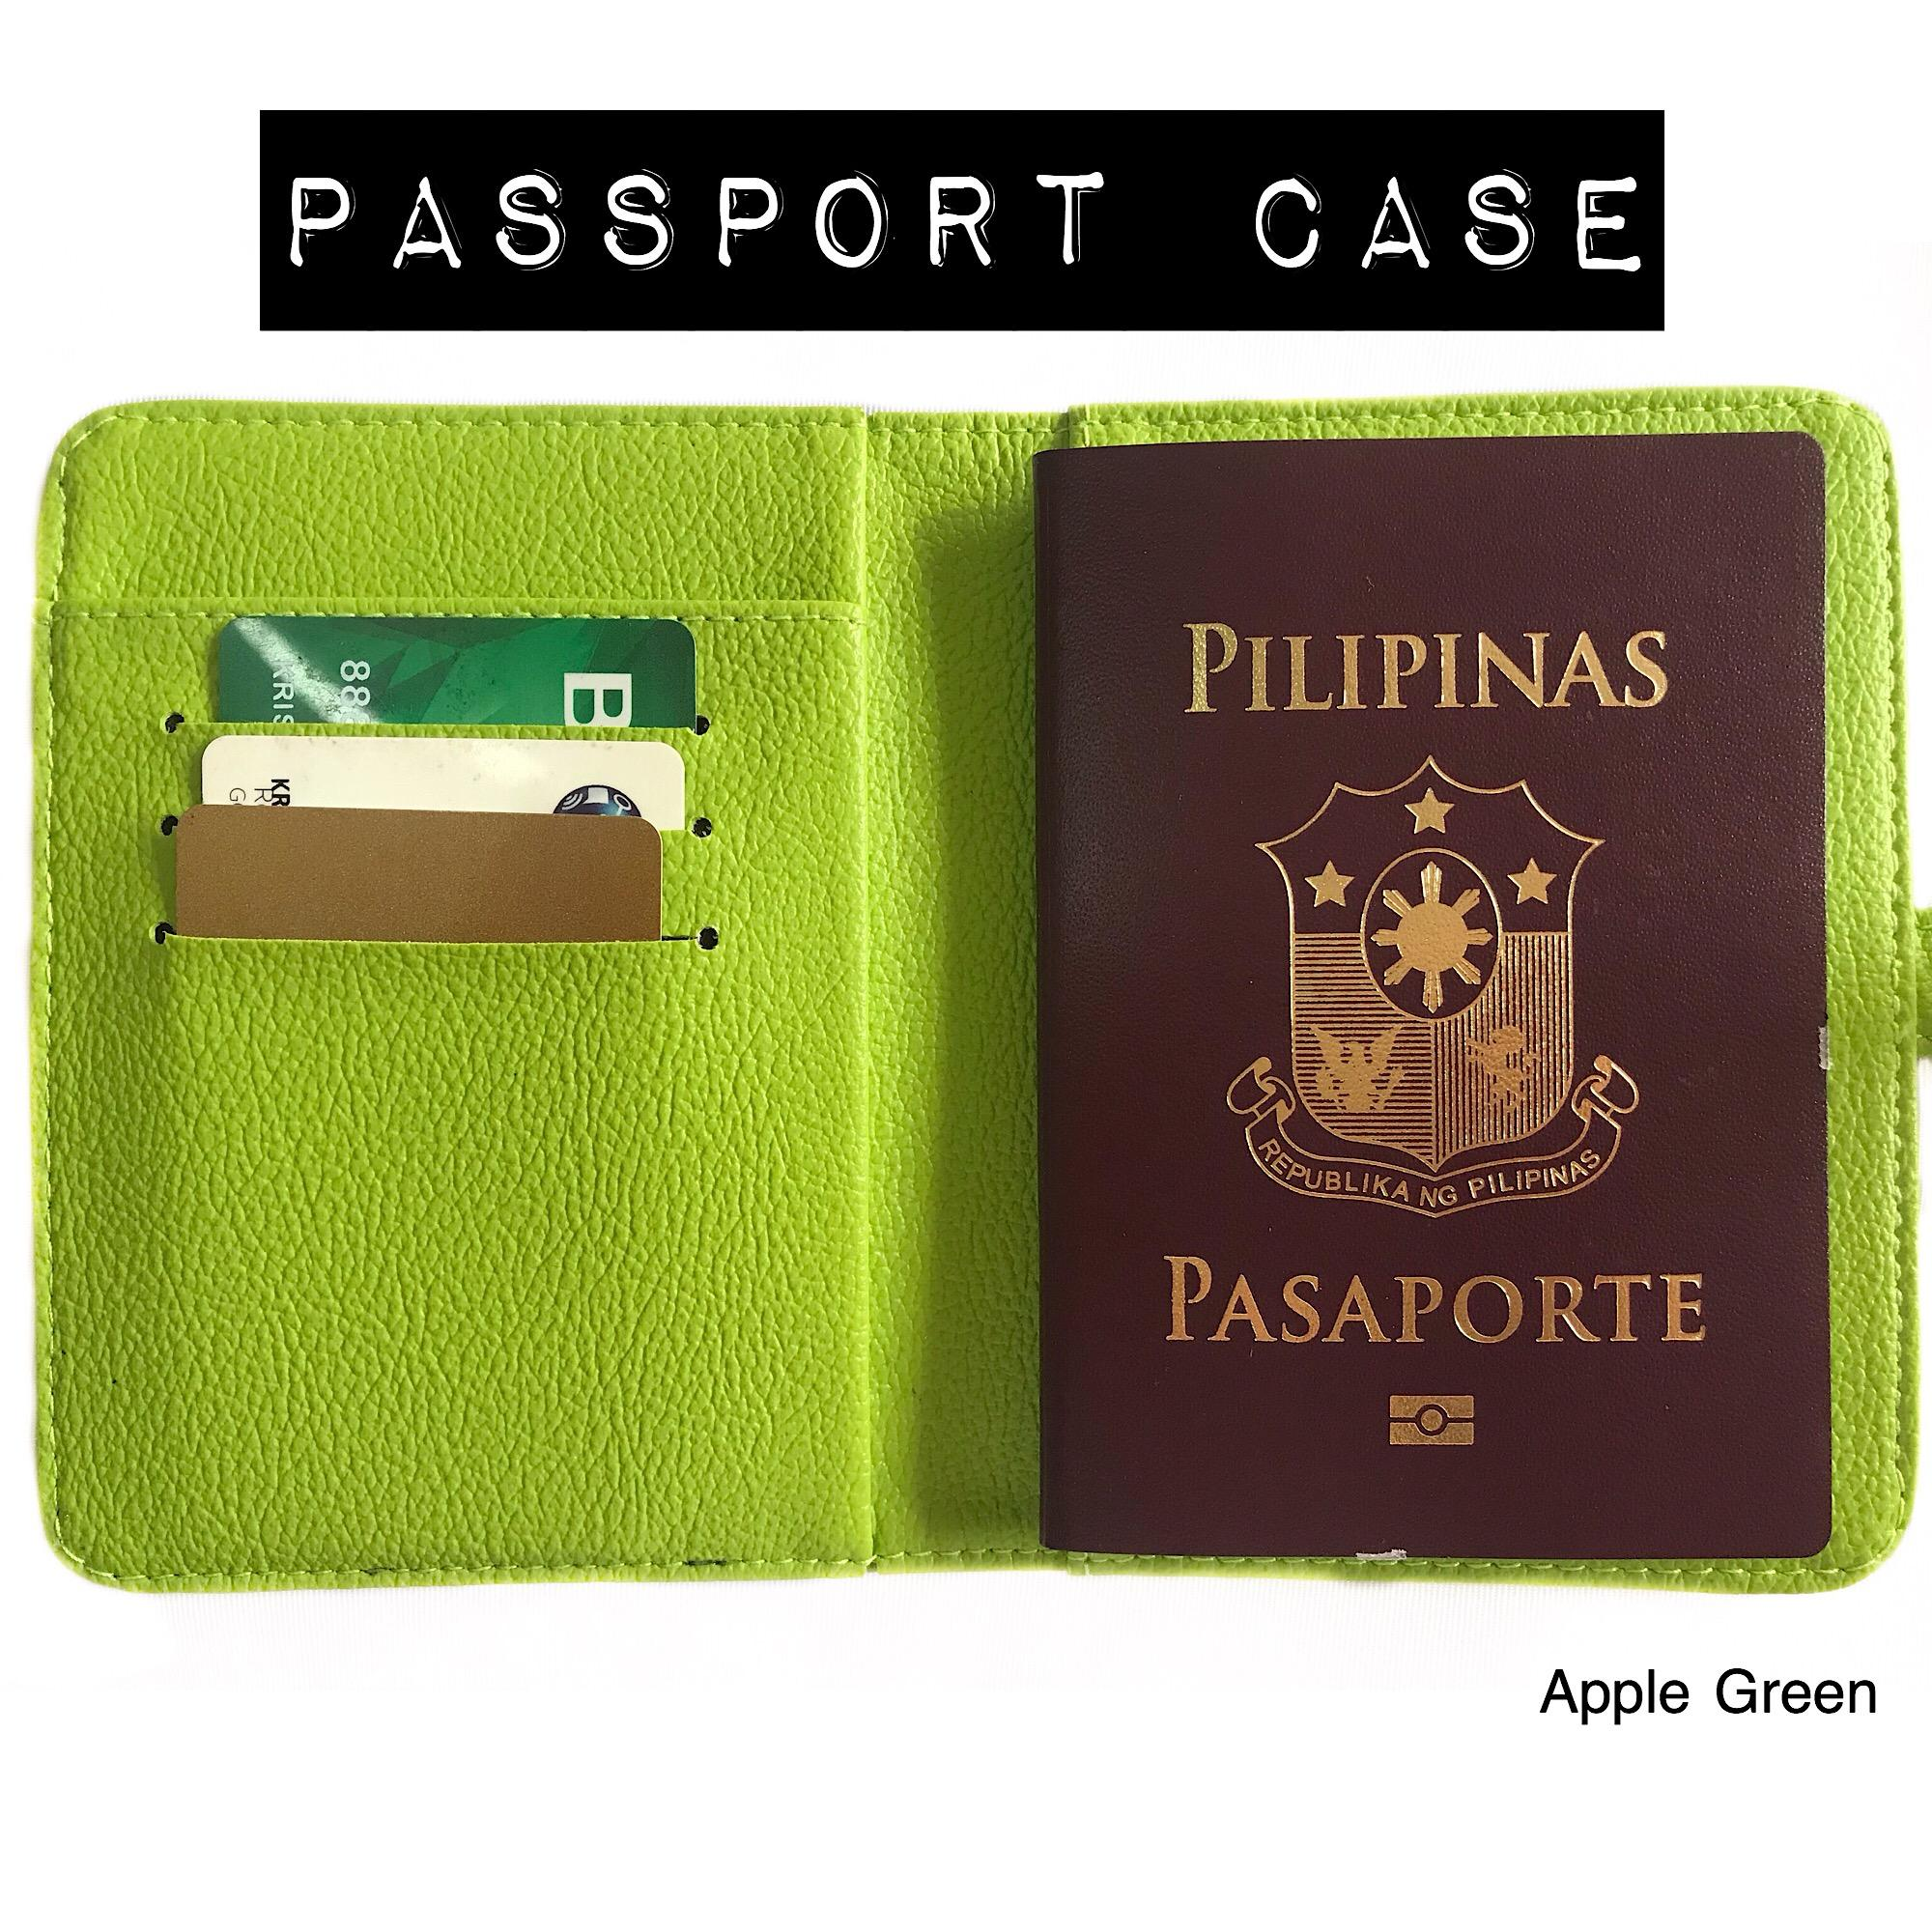 Passport Covers For Sale Holders Online Brands Prices Cover Reviews In Philippines